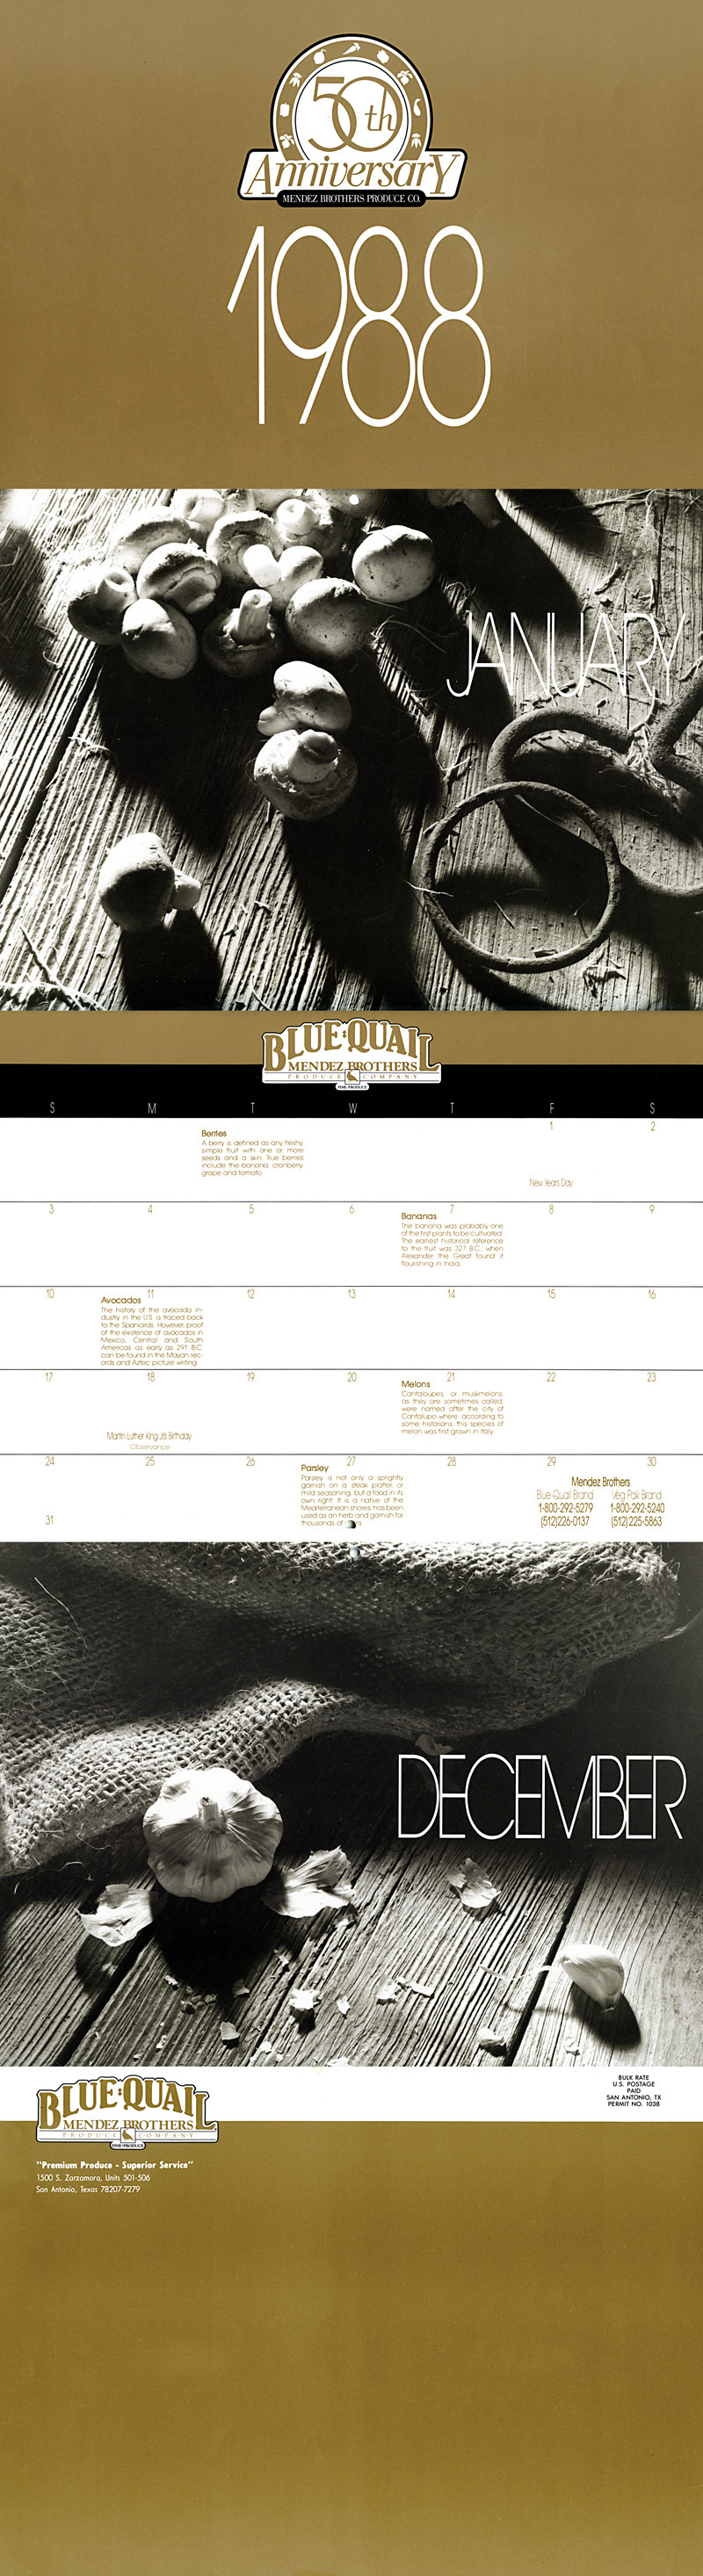 1988_Michael-Mehl_The-Highlight-Zone_Mendez-Brothers-Produce-Calendar